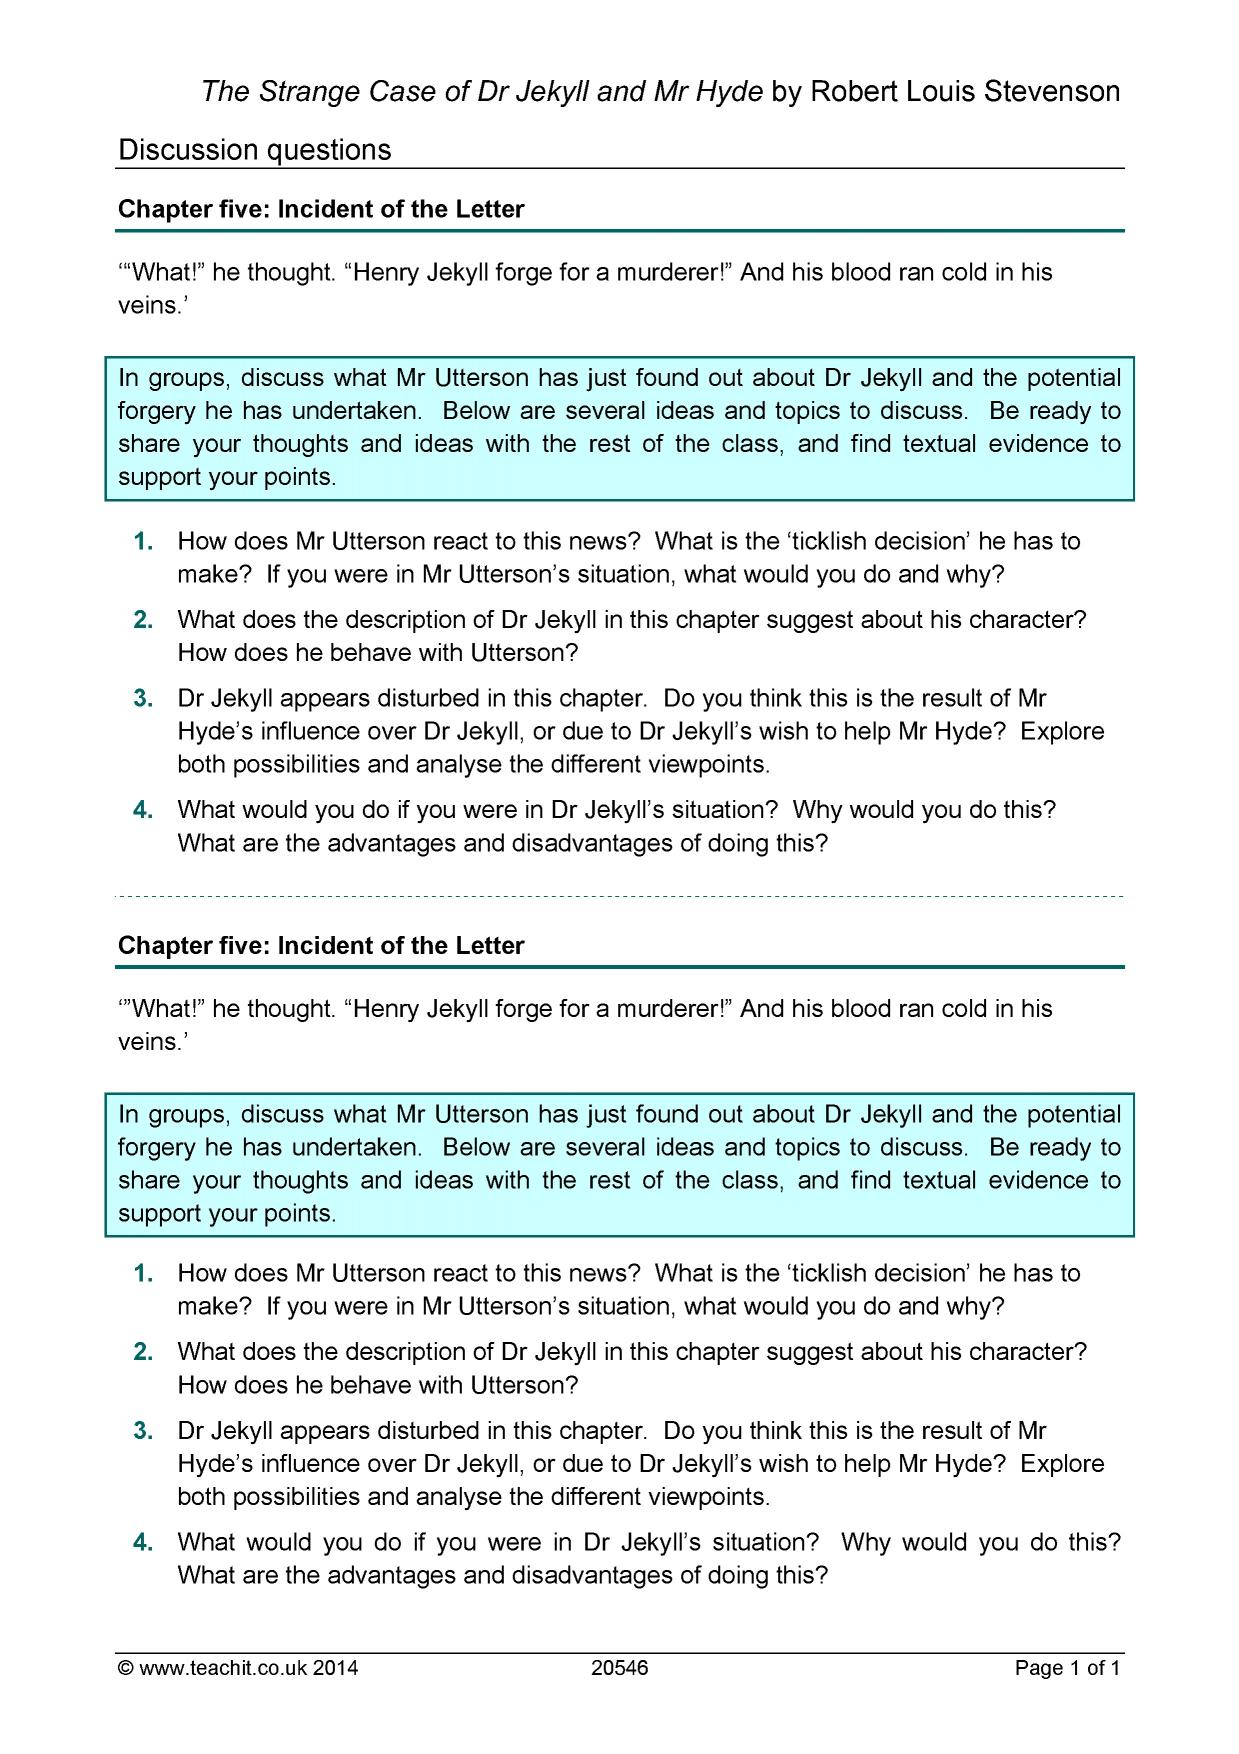 oedipus rex essay questions good research essay topics good  essay questions on dr jekyll and mr hyde dr jekyll and mr hyde essay questions gradesaver